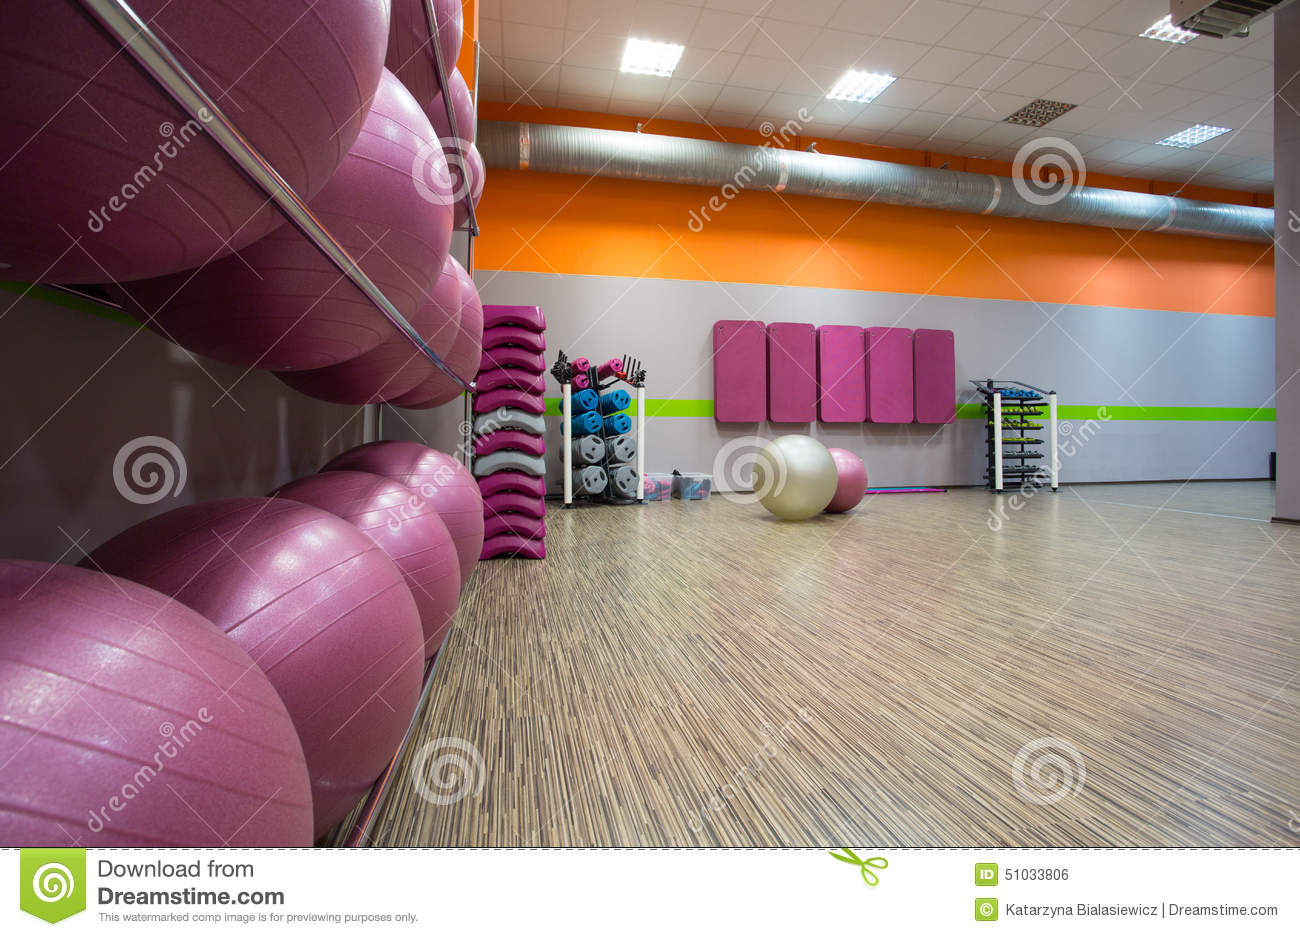 Fitnessraum modern  Modern fitness center stock photo. Image of modern, indoor - 51033806